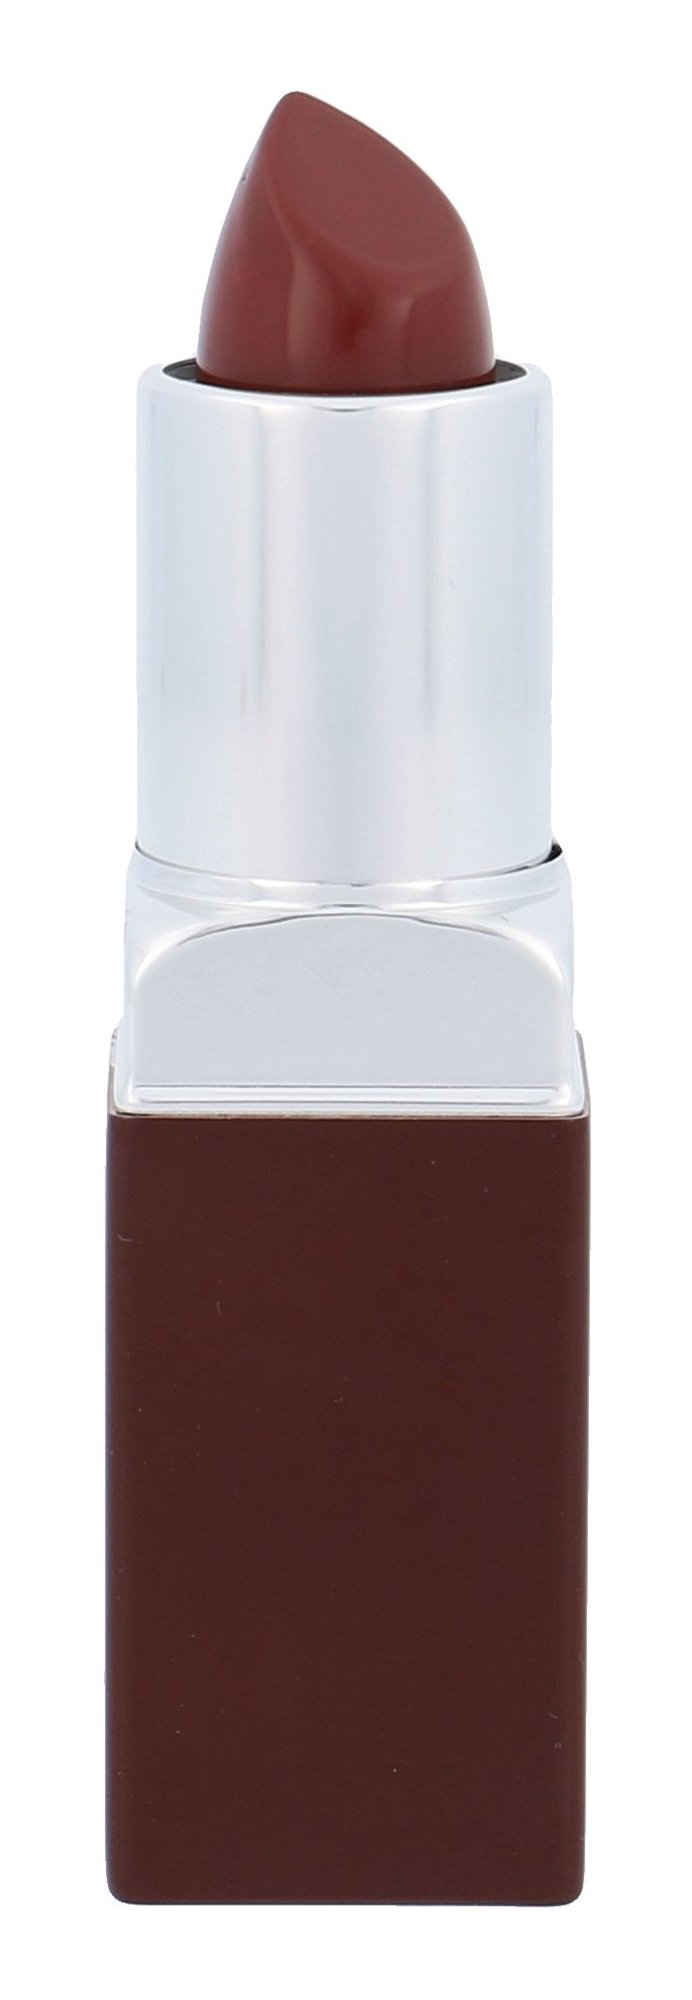 Clinique Clinique Pop Cosmetic 3,9ml 03 Cola Pop Lip Colour + Primer